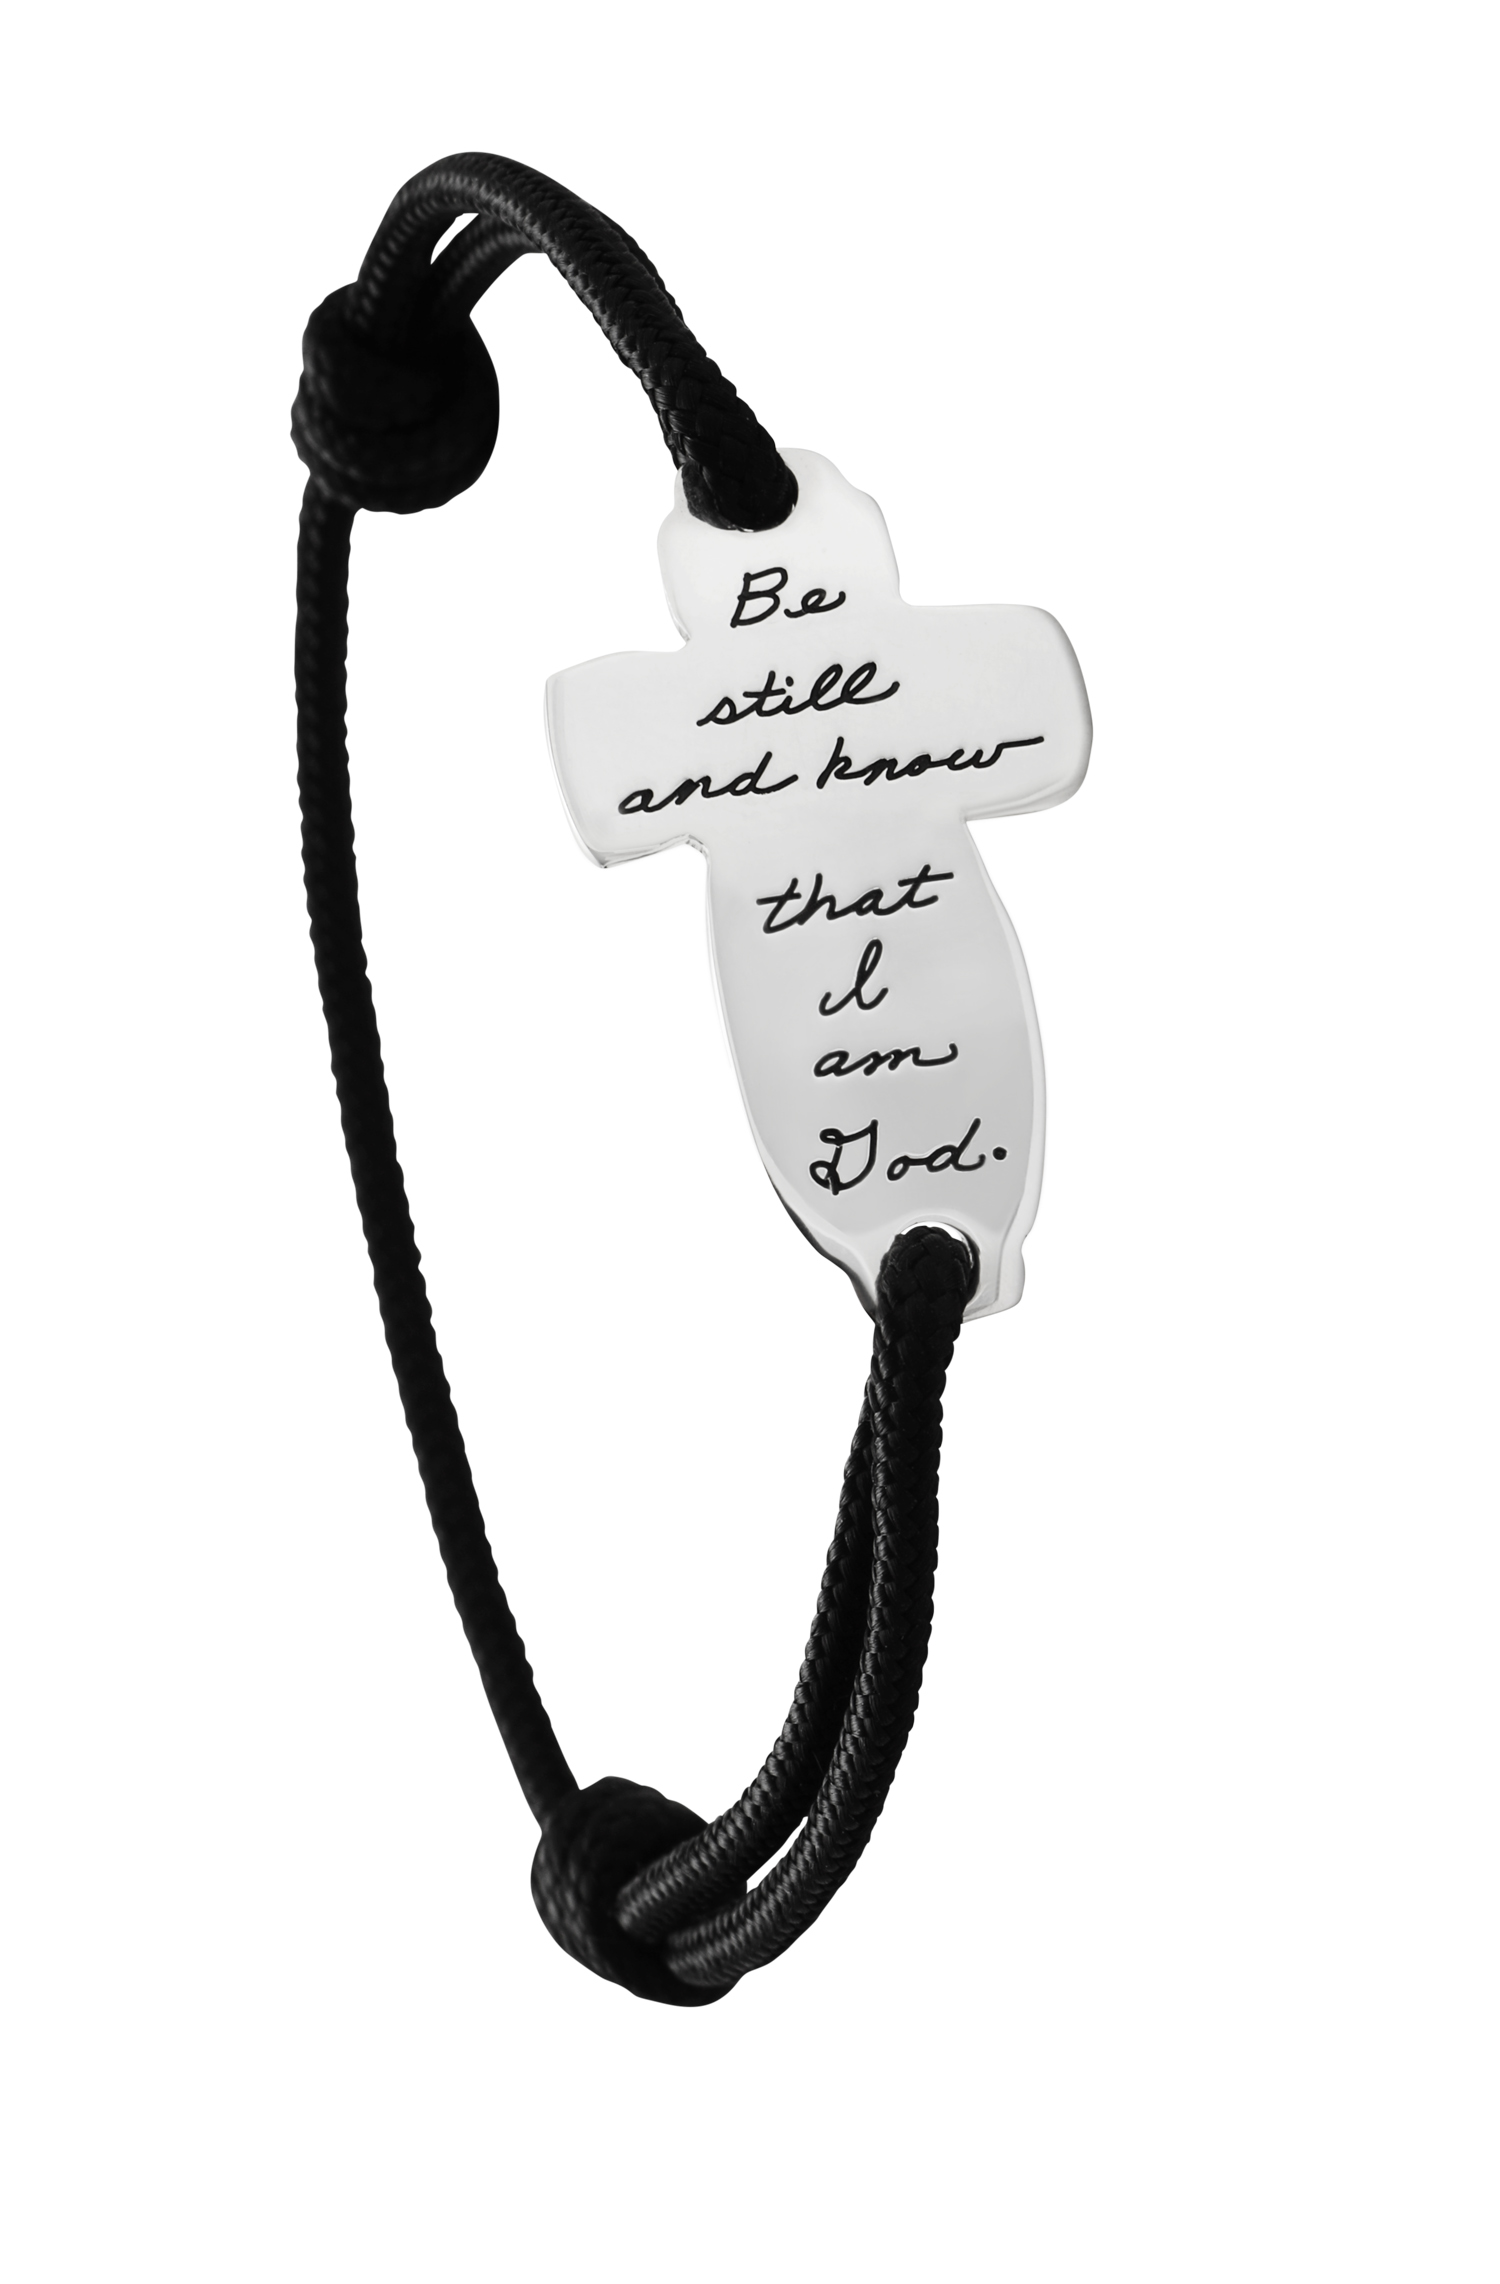 Black Wrist cord with Sterling Silver Inspirational Cross shaped plaque engraved with quote - Be still and know that I am God.